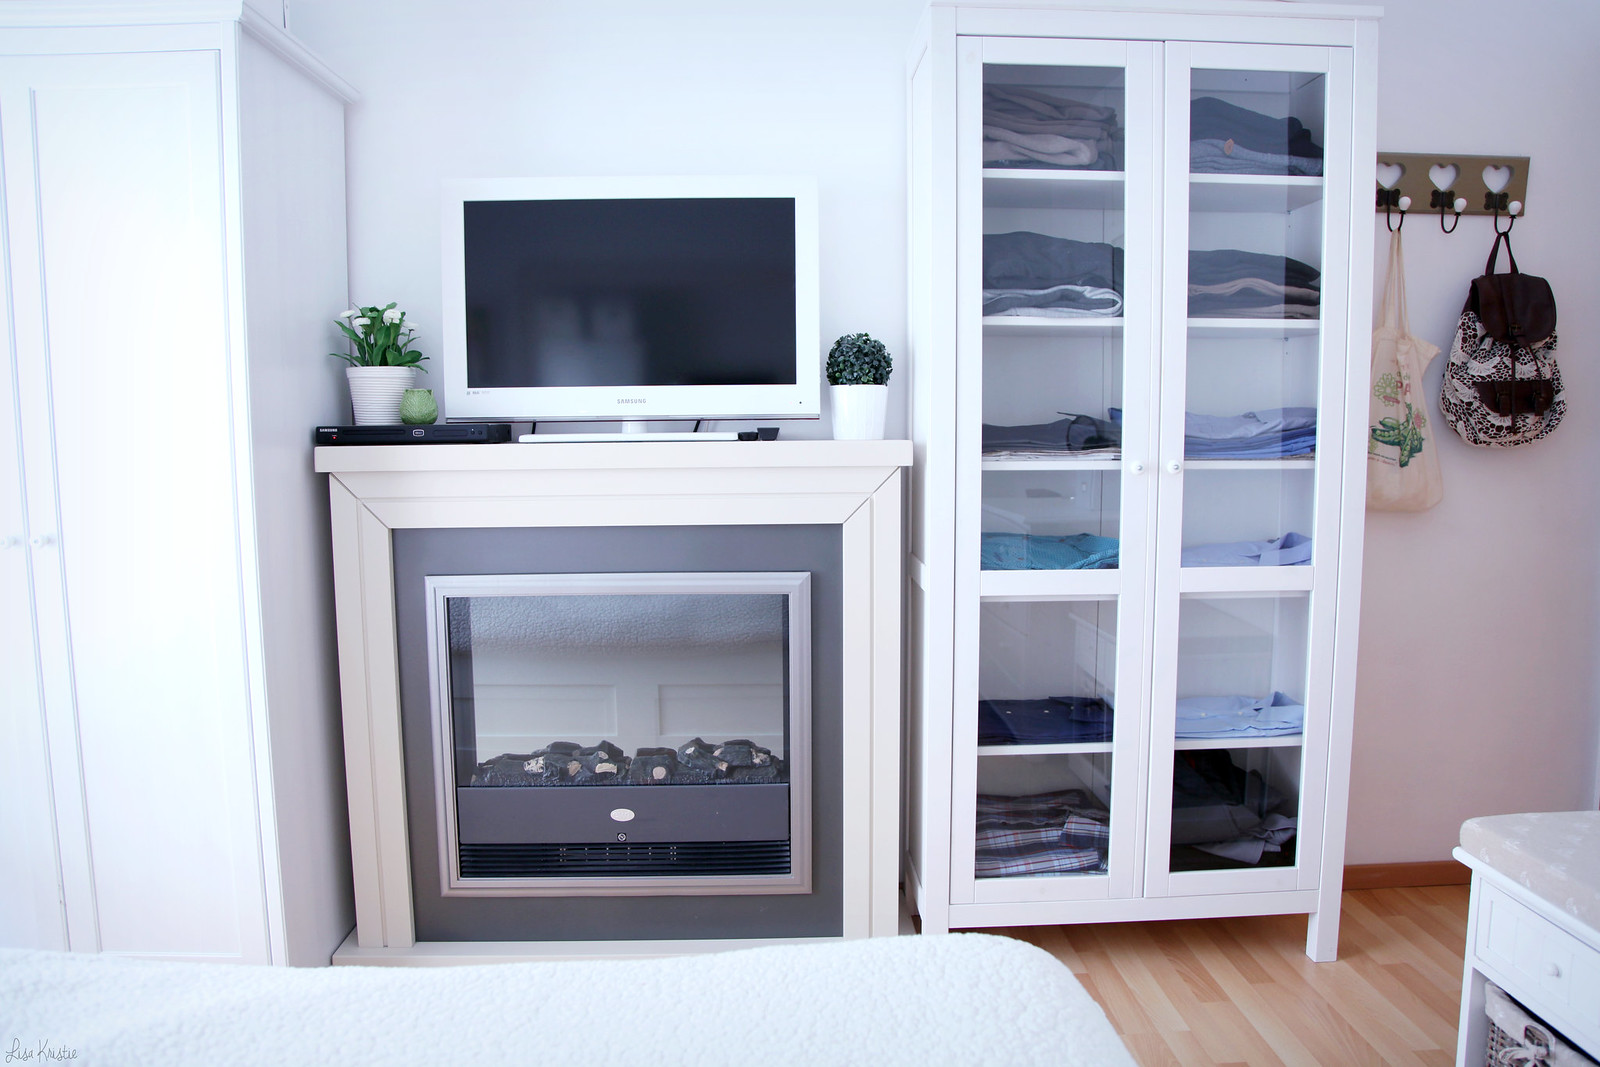 bedroom interior home white pale colors scandinavian style minimalistic clean fireplace flatscreen tv ikea wardrobe furniture hemnes glass doors cabinet decoration